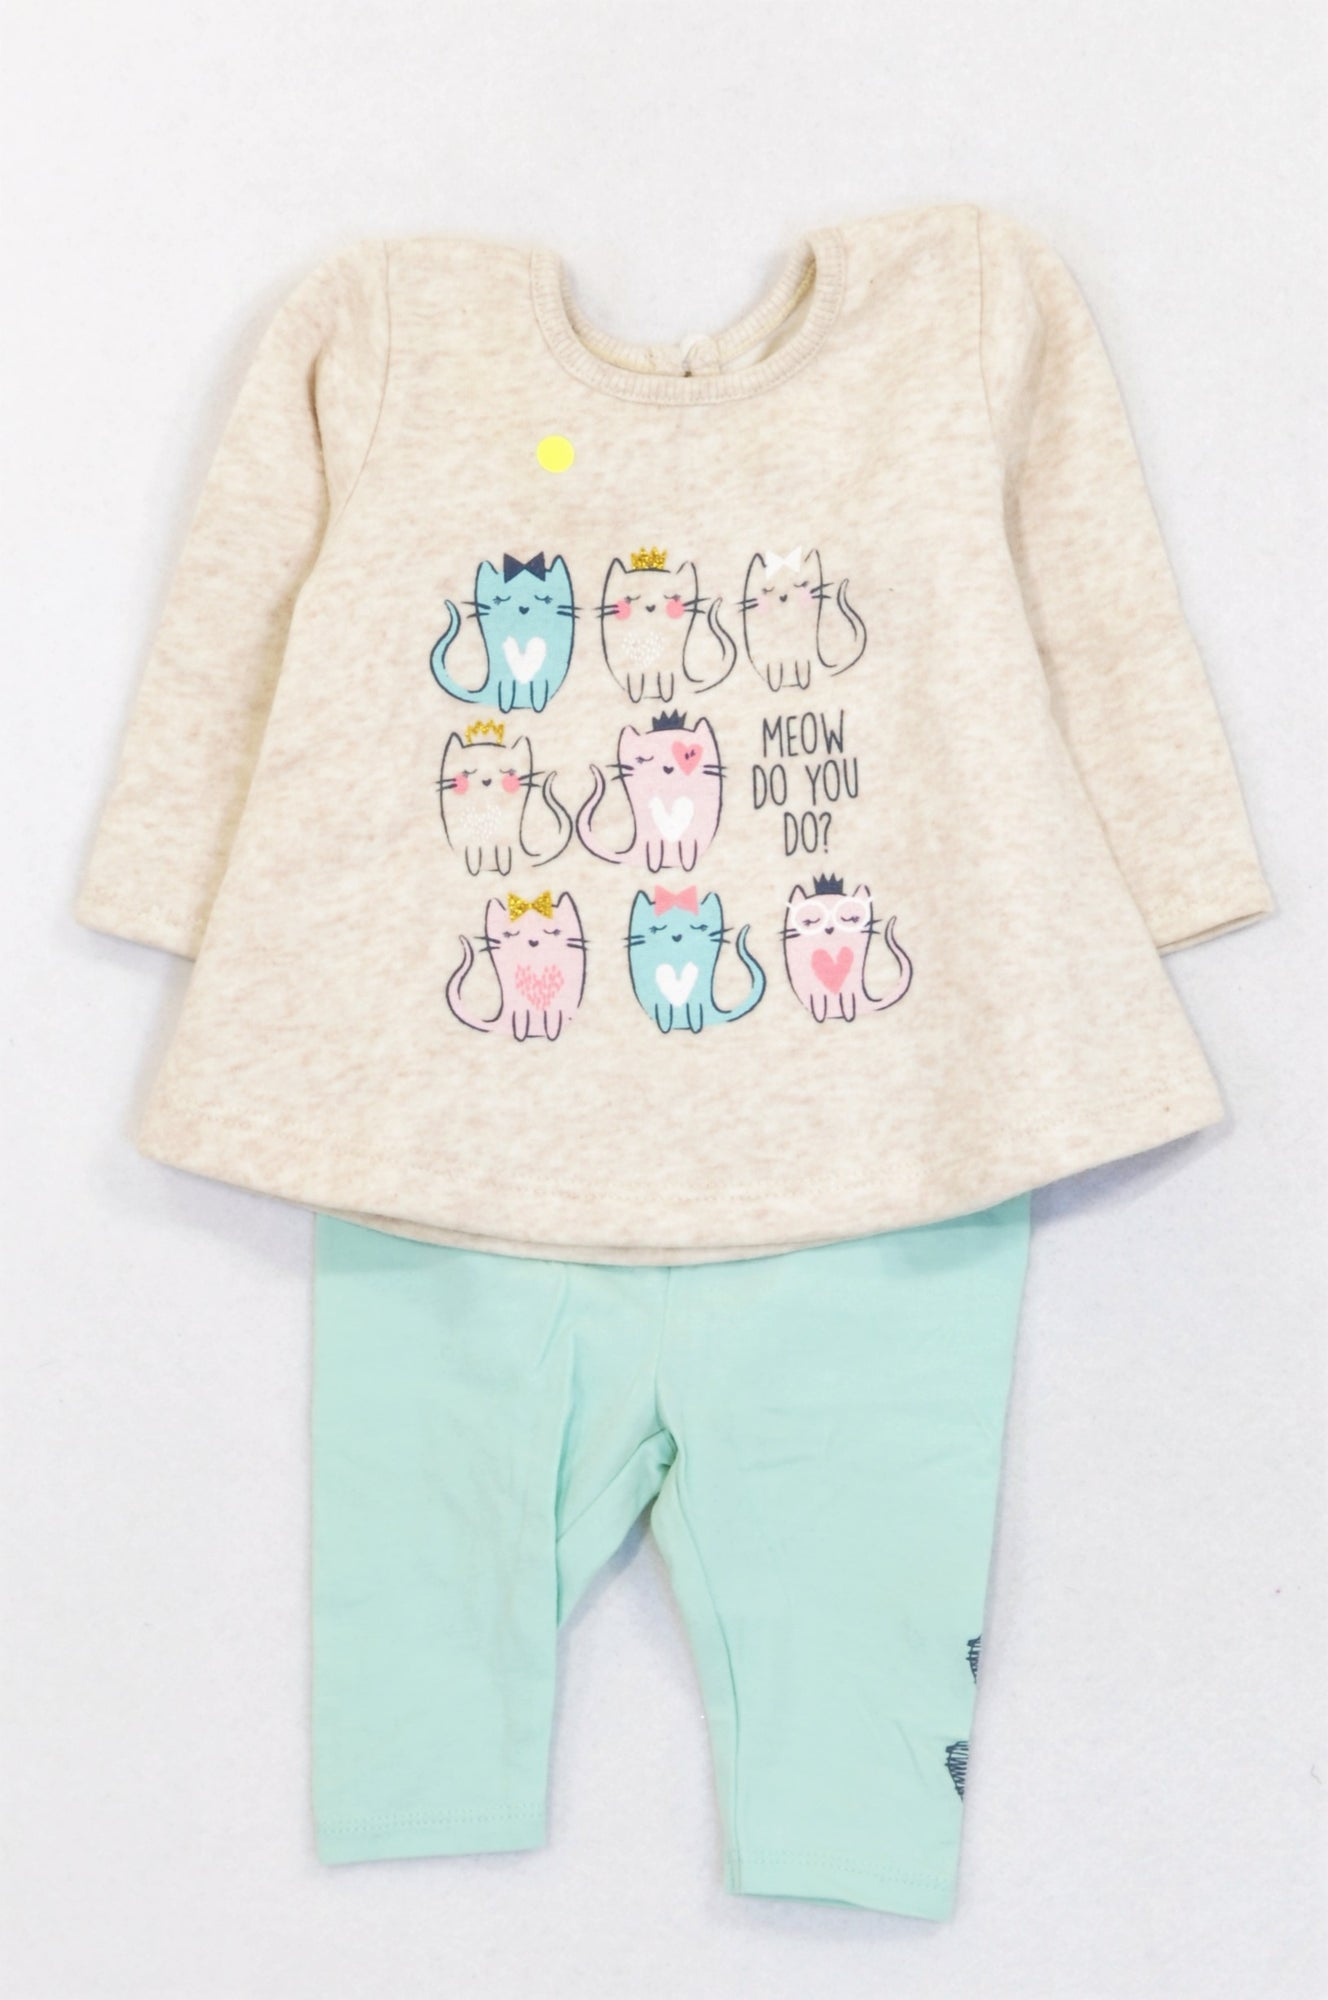 Woolworths Beige & Aqua Meow Do You Do Outfit Girls 0-3 months